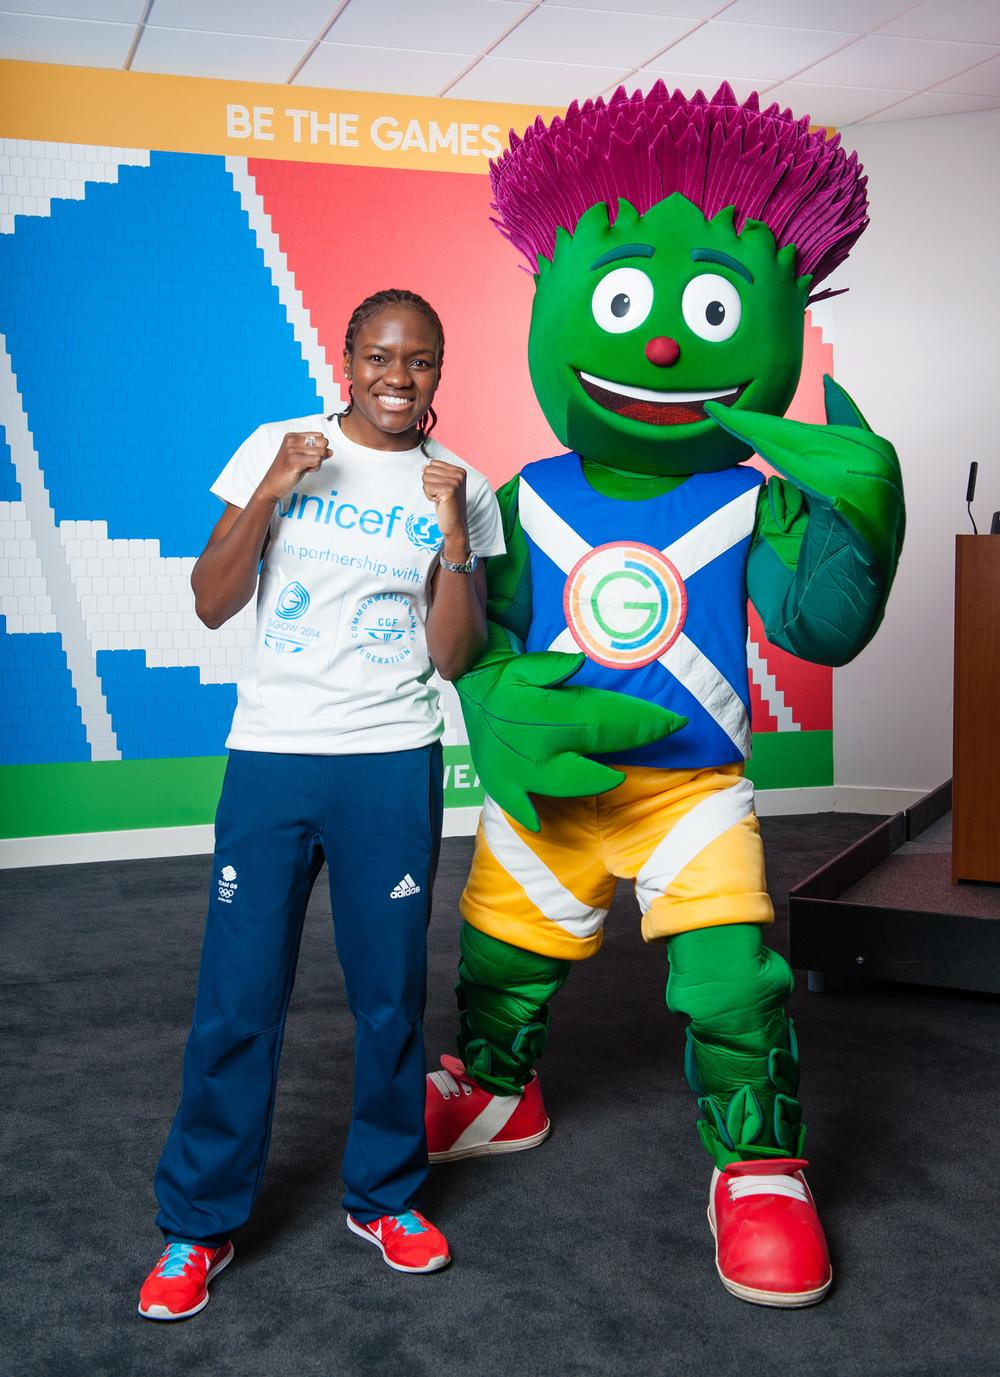 The Games' official mascot, Clyde, with Olympic boxing champion Nicola Adams